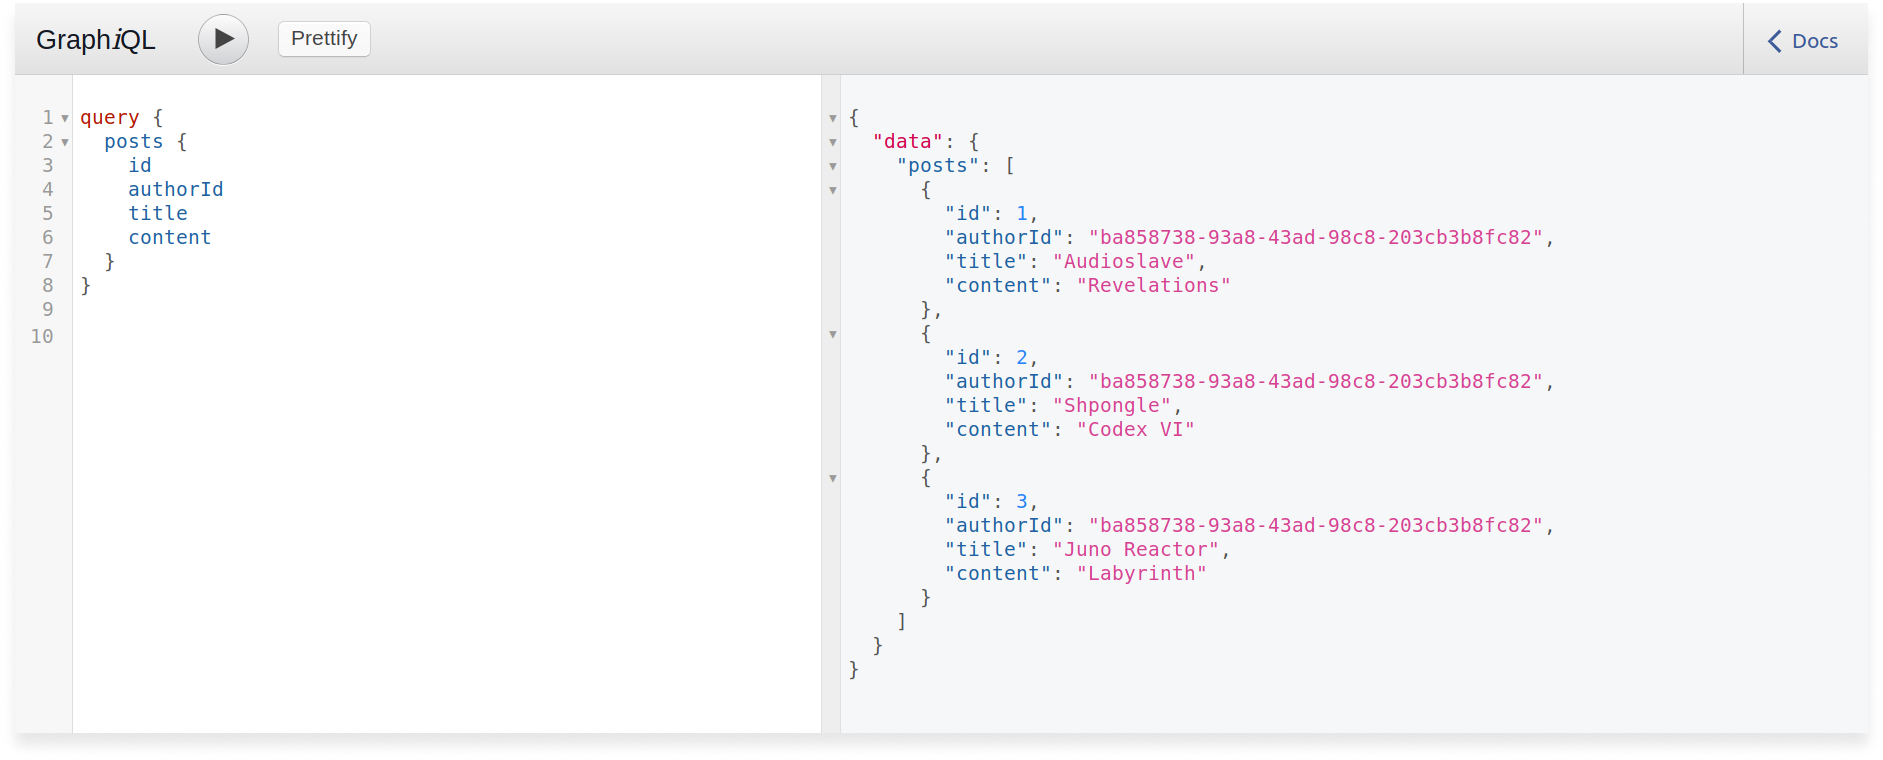 GraphQL query to get all posts in a Scala GraphQL application